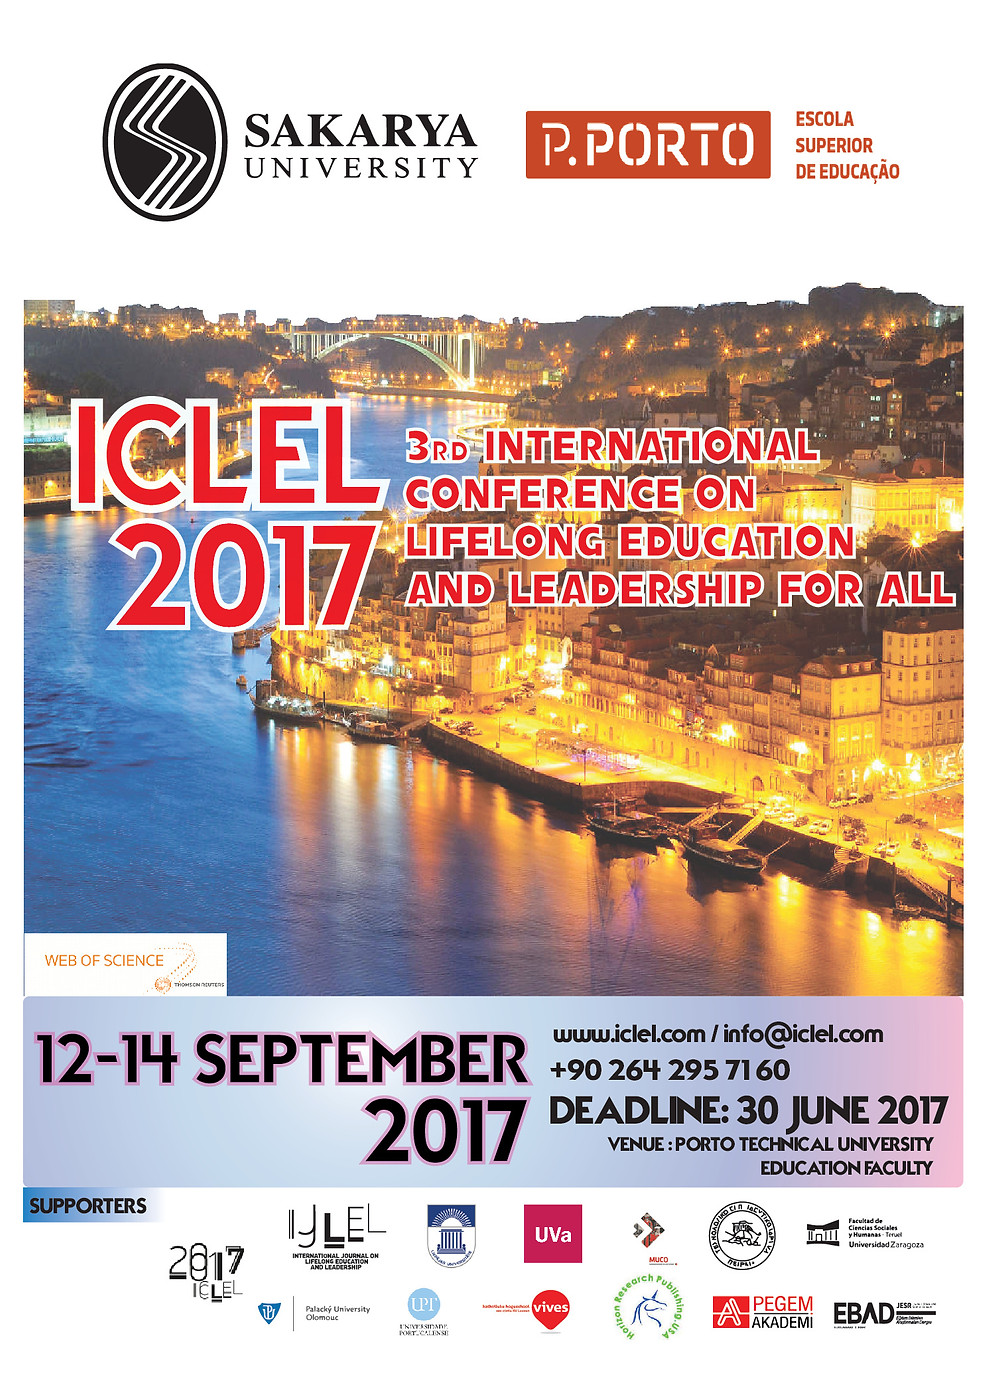 September 12-14 2017 ICLEL 17 Submission has started ! Özet gönderme süreci başlamıştır! Abstract of the Conference :  All papers related Education, Leadership, Lifelong Learning, Human Resources, Vocational Education, Management etc could be acceptable for present during this conference. Deadline: 30 June 2017. SSCI and ERIC etc indexed publication options are possible and Conference Proceeding will be sent indexed in ISI WEB of Science!